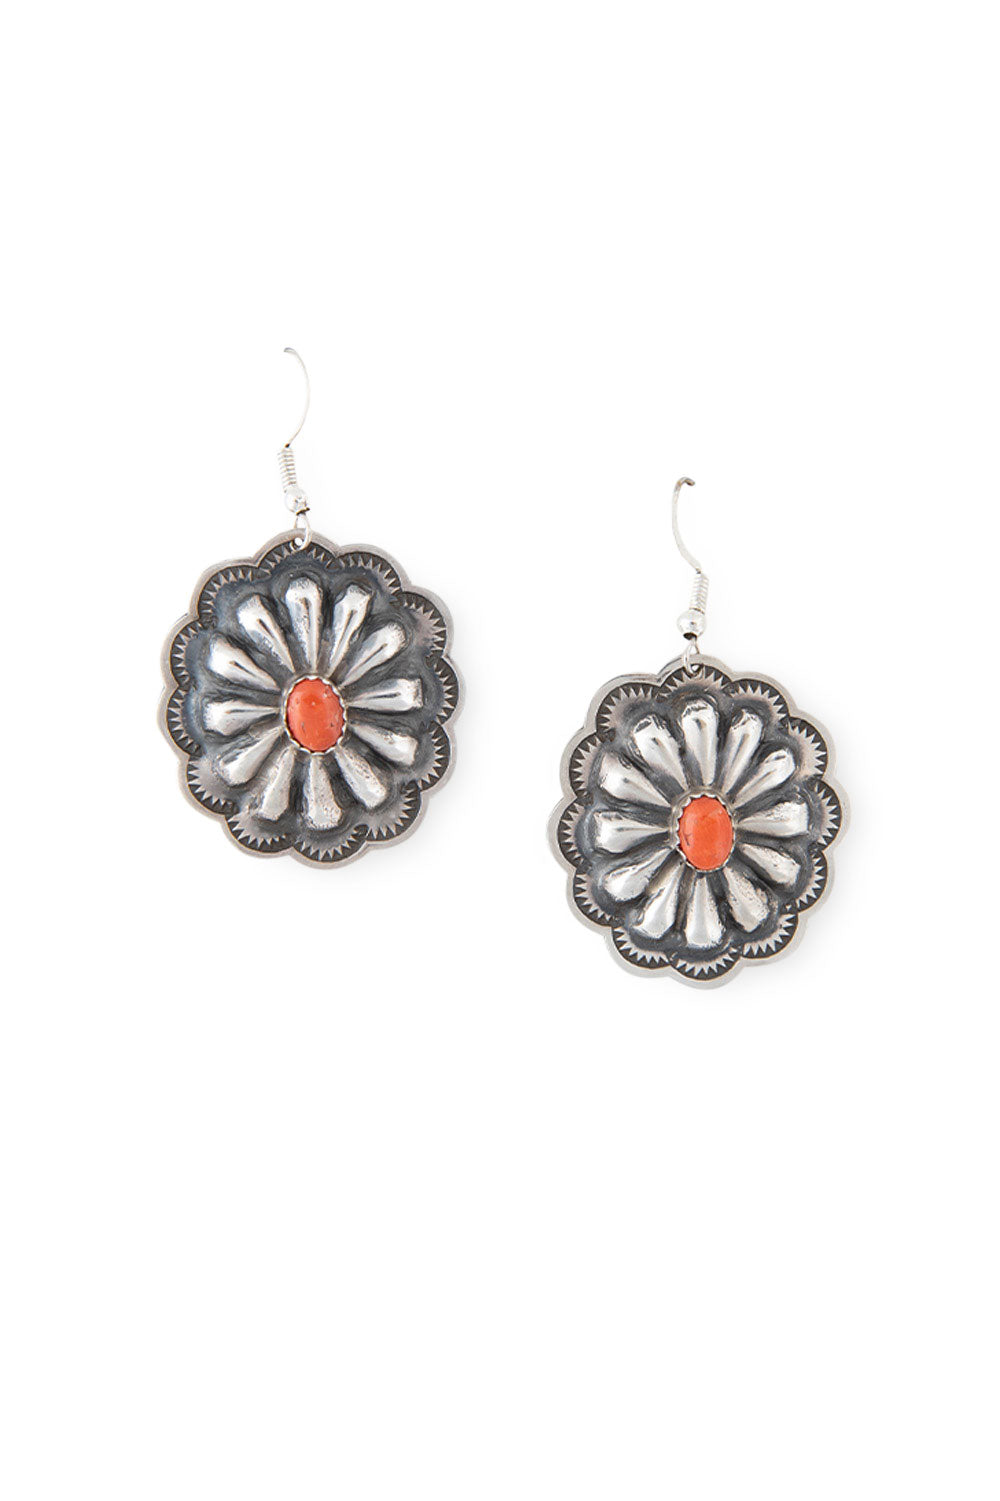 Earrings, Concho, Spiny Coral, Hallmark, 382